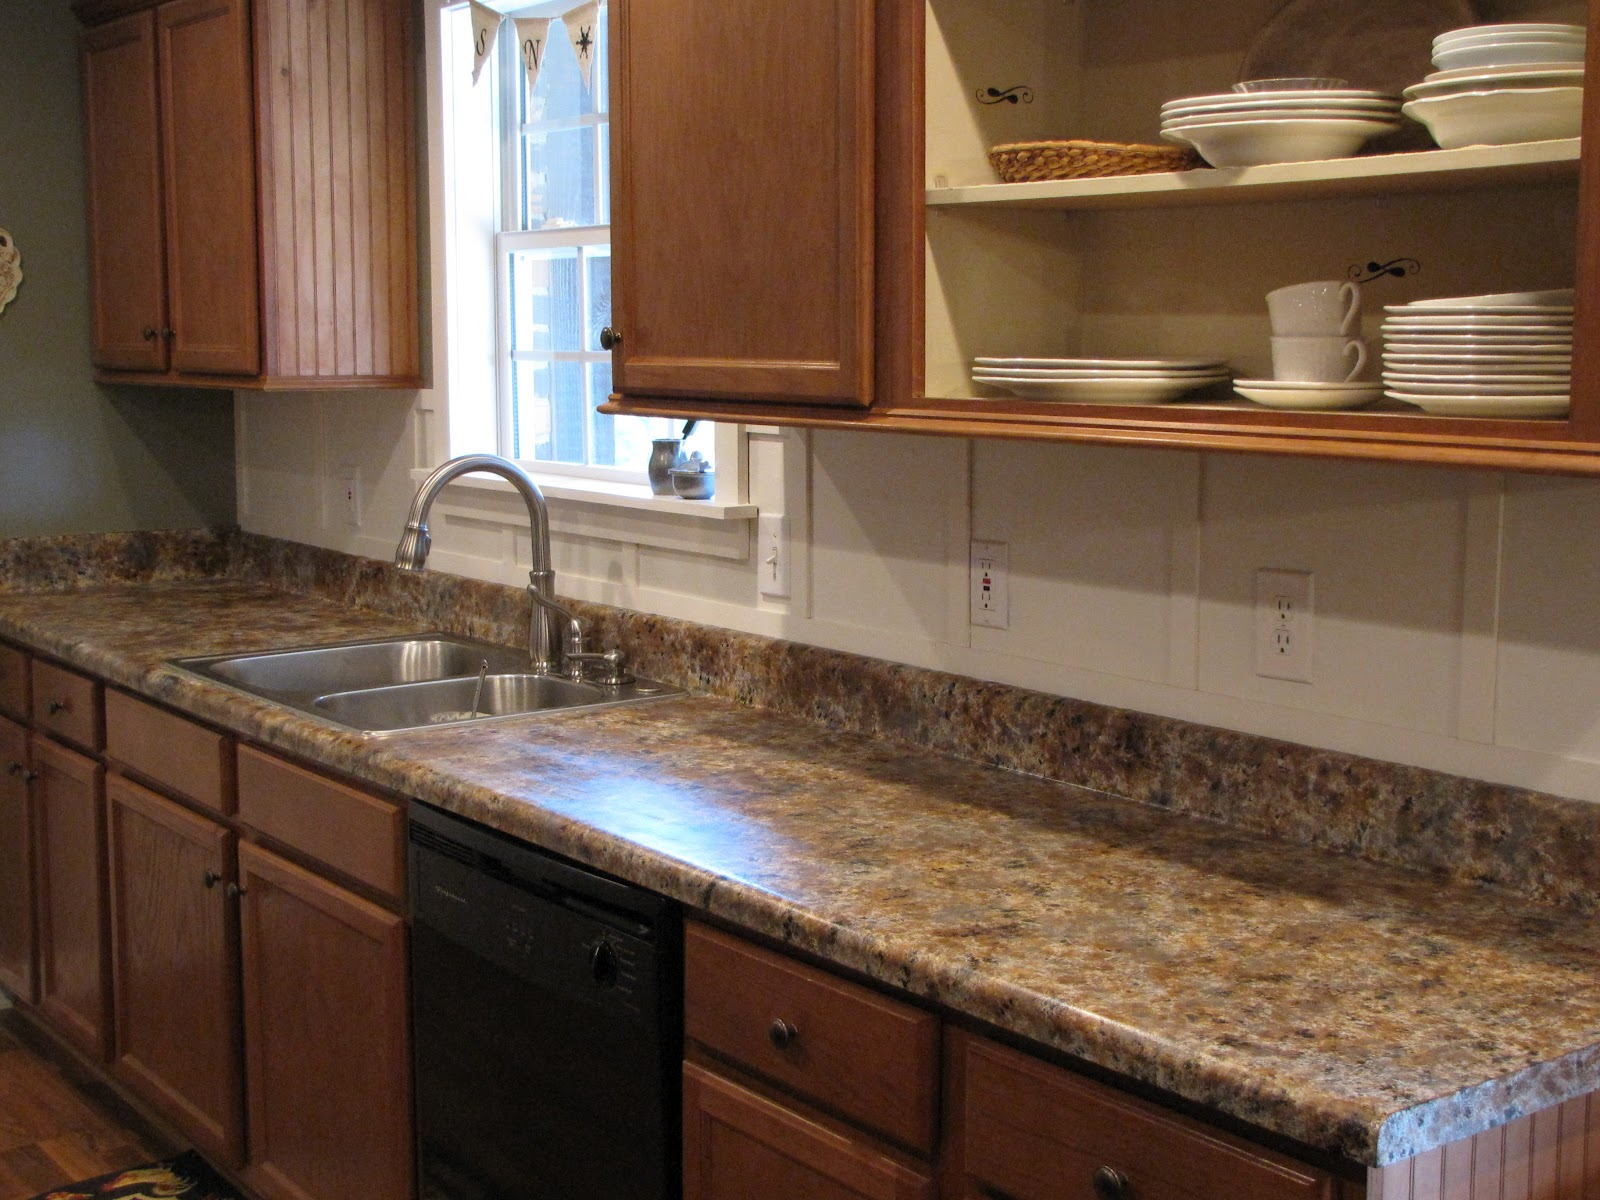 Countertop Materials Laminate : Painting Laminate Countertops In The Kitchen